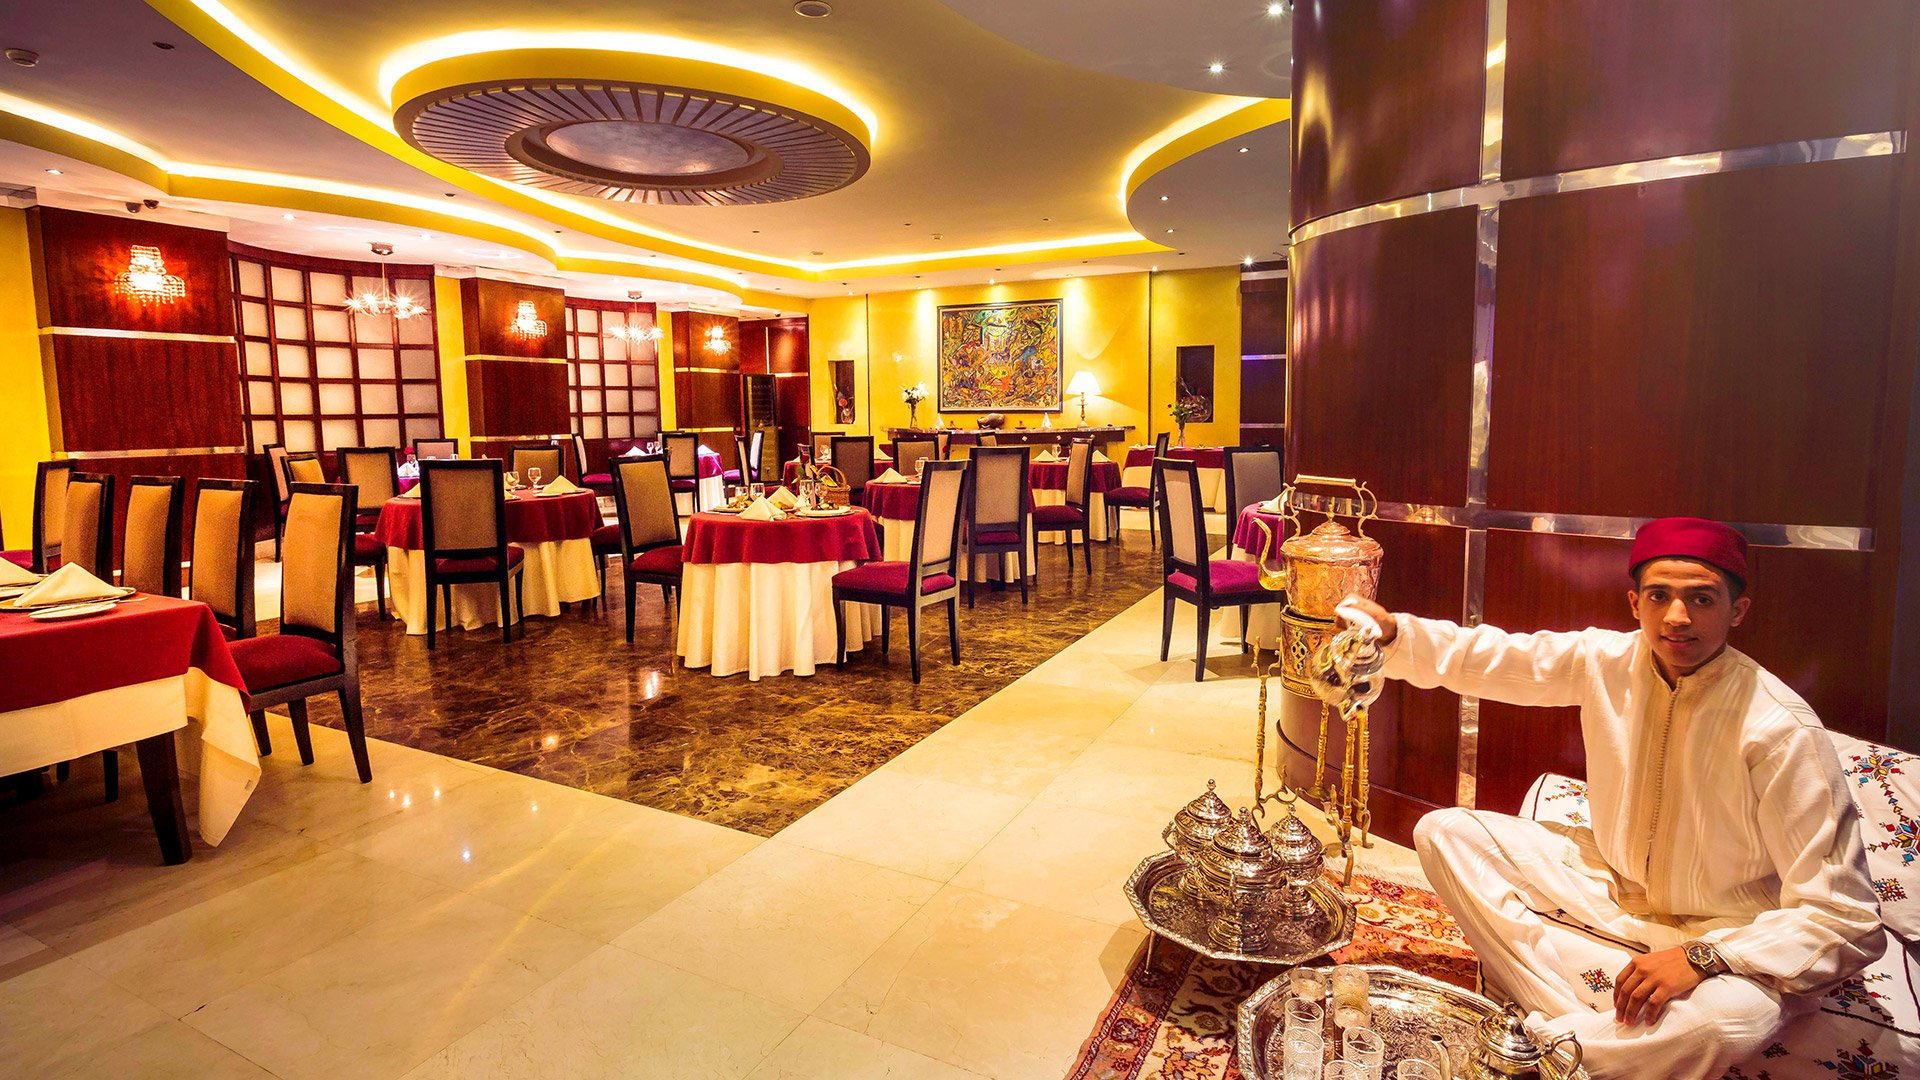 Hotel affaires Casablanca - Business Hotel Casablanca - Hosting meeting Casablanca - Centre ville Casablanca